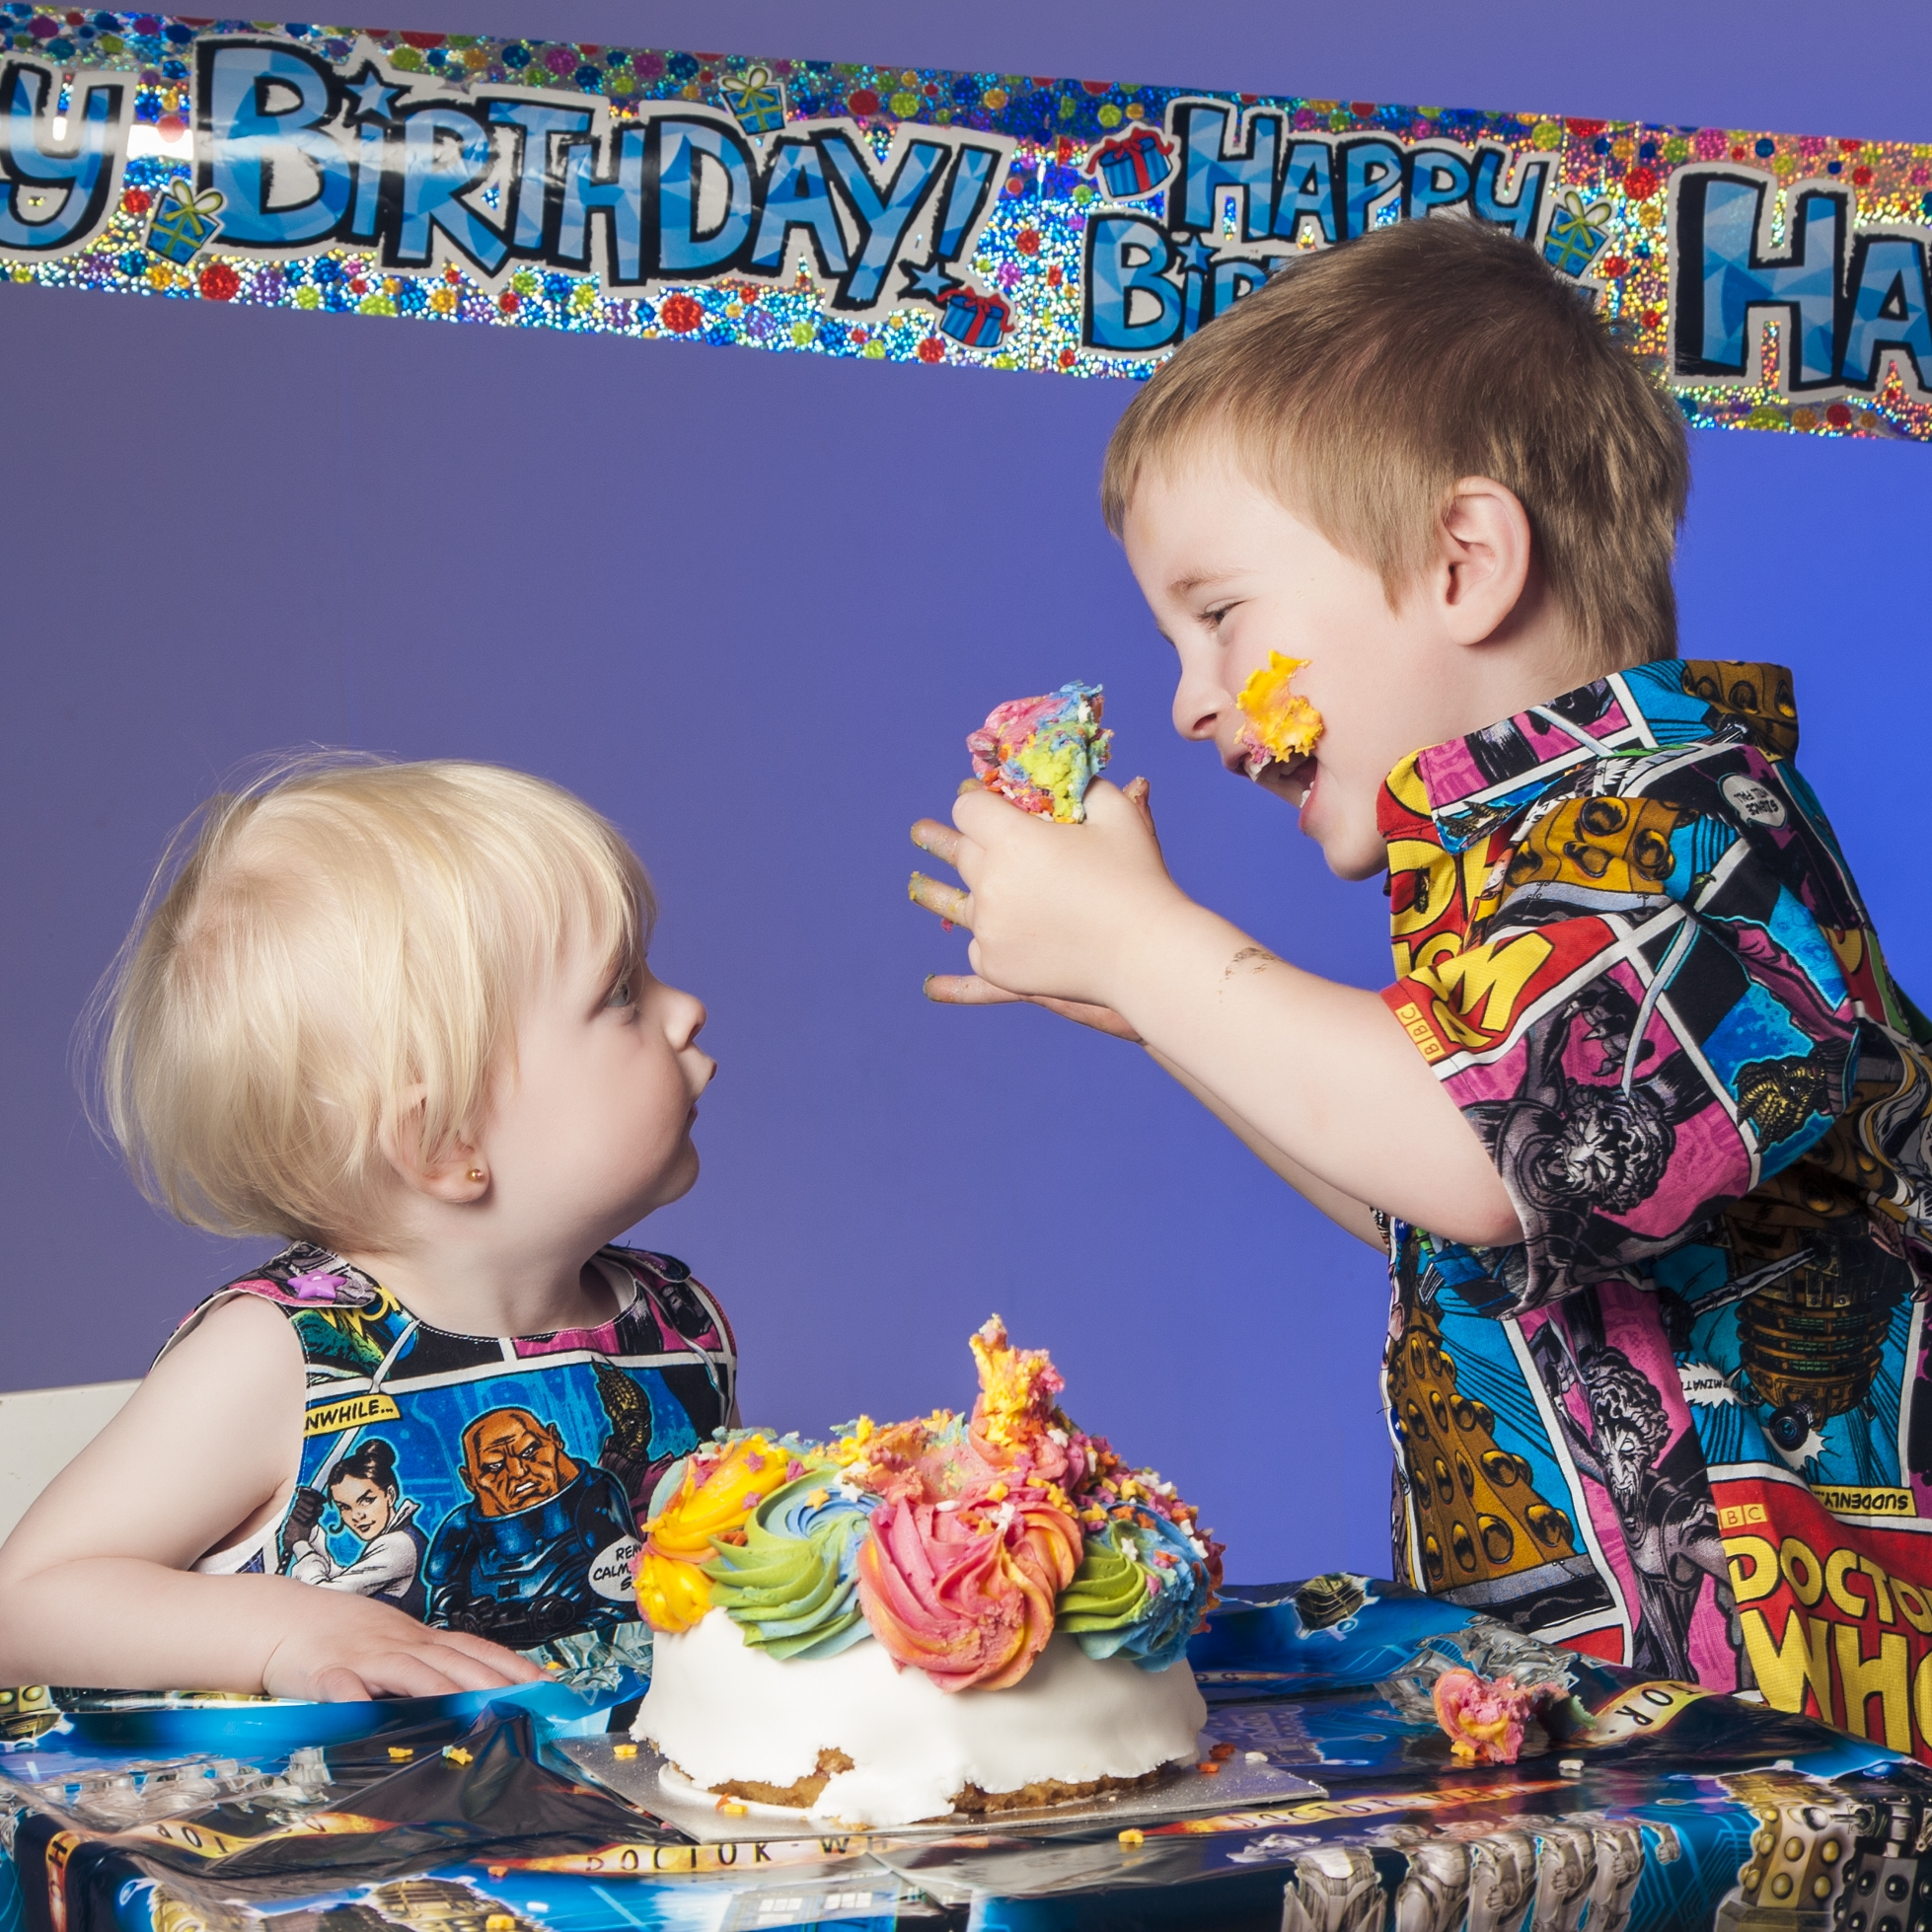 photography-studio-leicester-photo-shoot-photographer-baby-cakesmash-cake-smash-birthday-first-zigzag-zig-zag-family-clarendon-park-photographer-queens-road-ideas-props-siblings-doctor-who-banner-icing-boy-girl-children.jpg